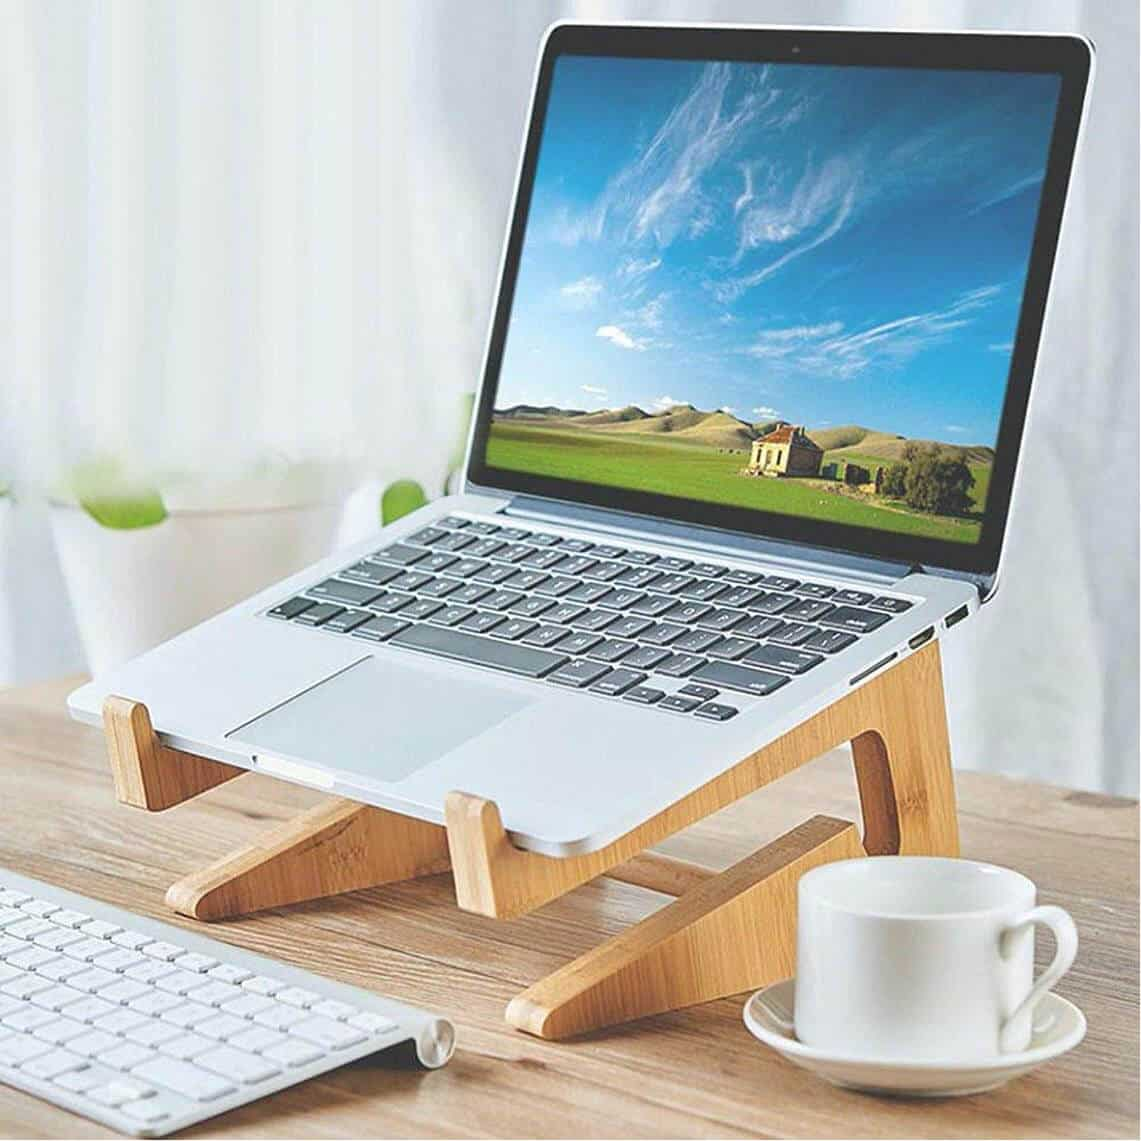 Wooden Macbook and Macbook Pro Laptop Stand